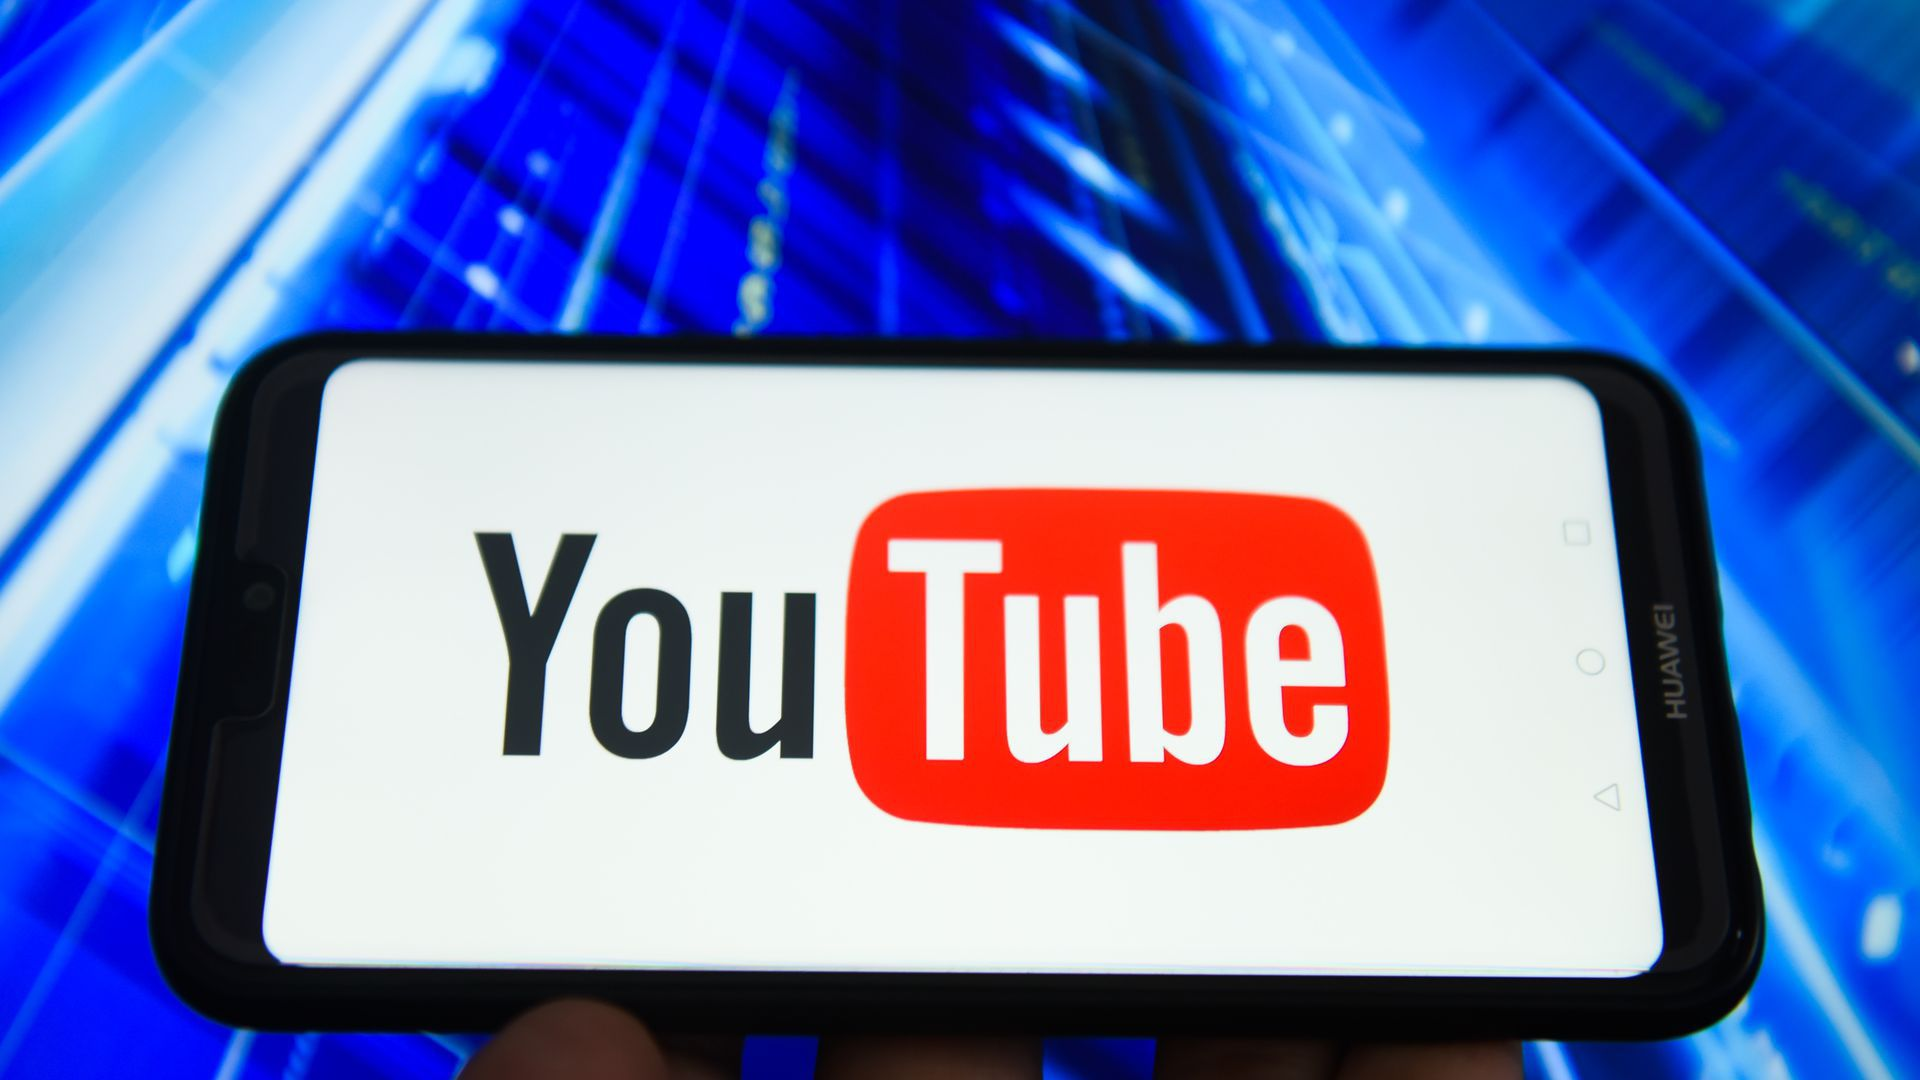 Companies pull ads from YouTube ... again